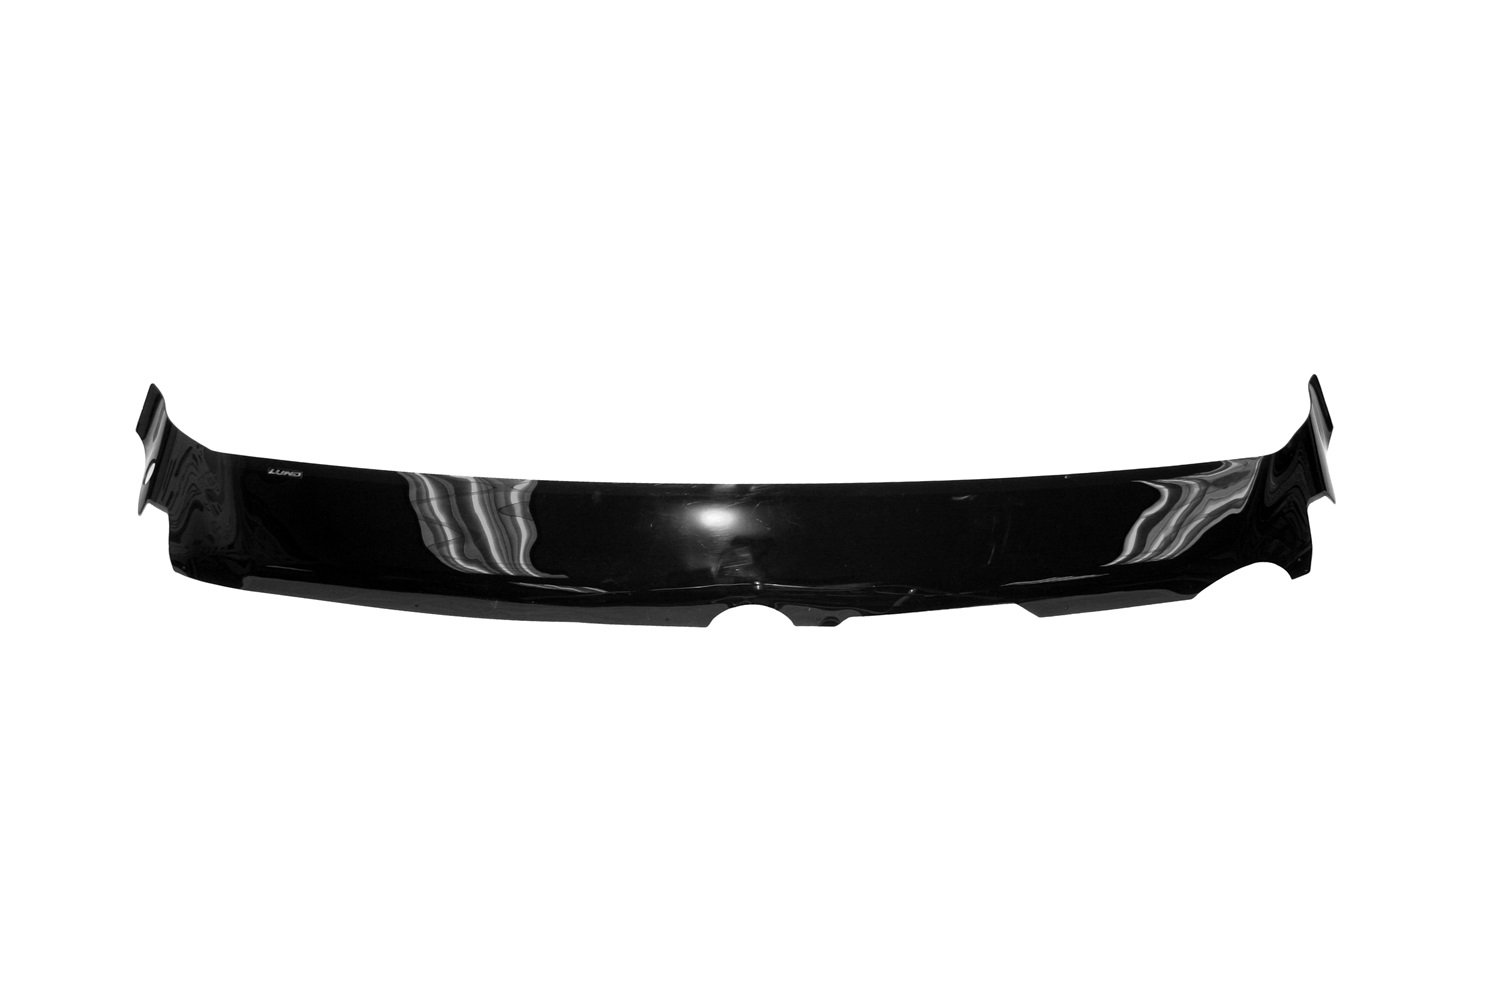 New lund shadow wiper cowl chevrolet silverado